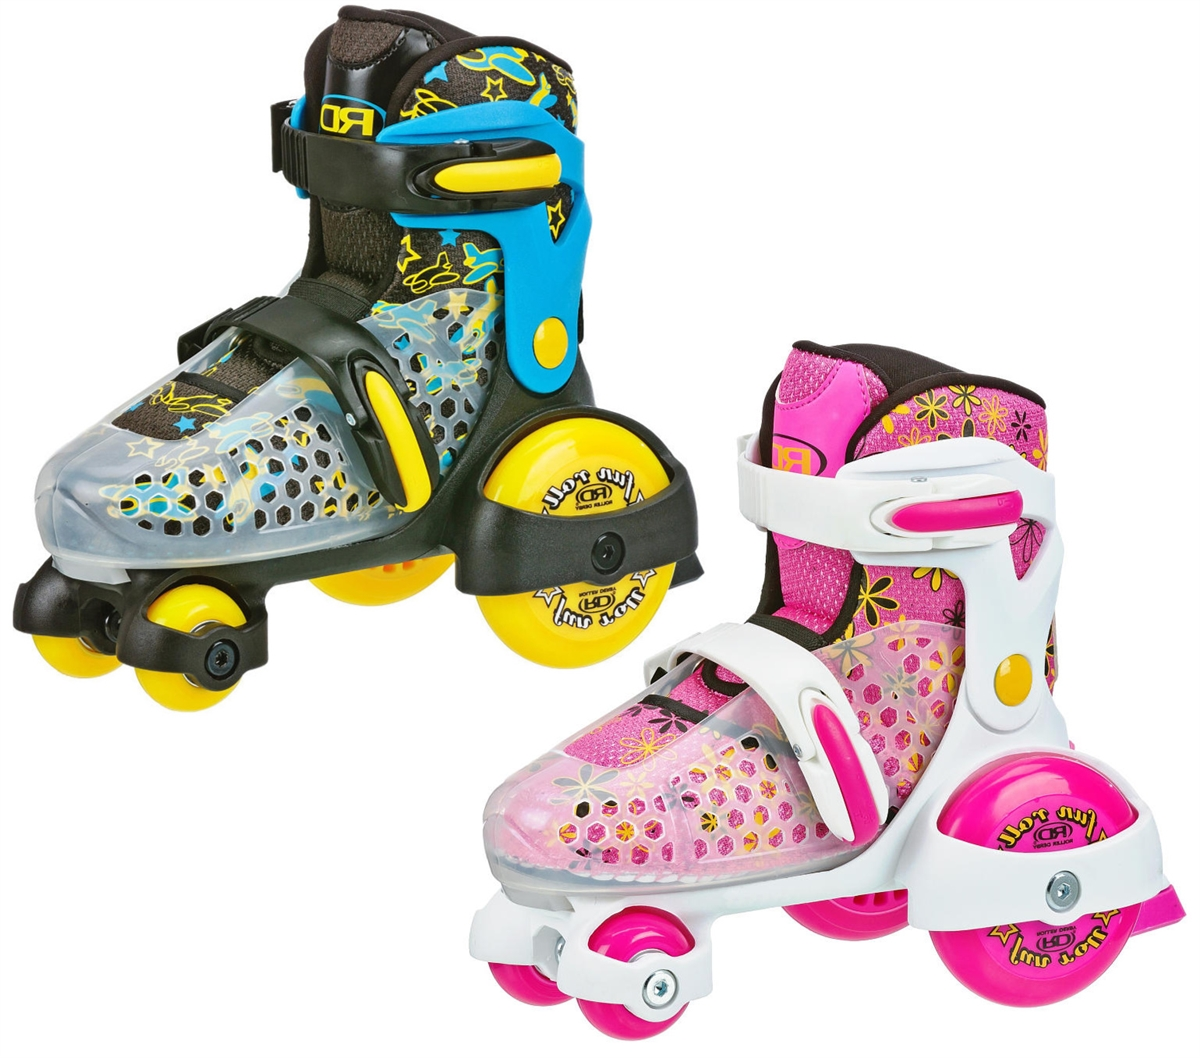 Pacer Fun Roll Kids Adjustable Roller Skates Connie S Skate Place